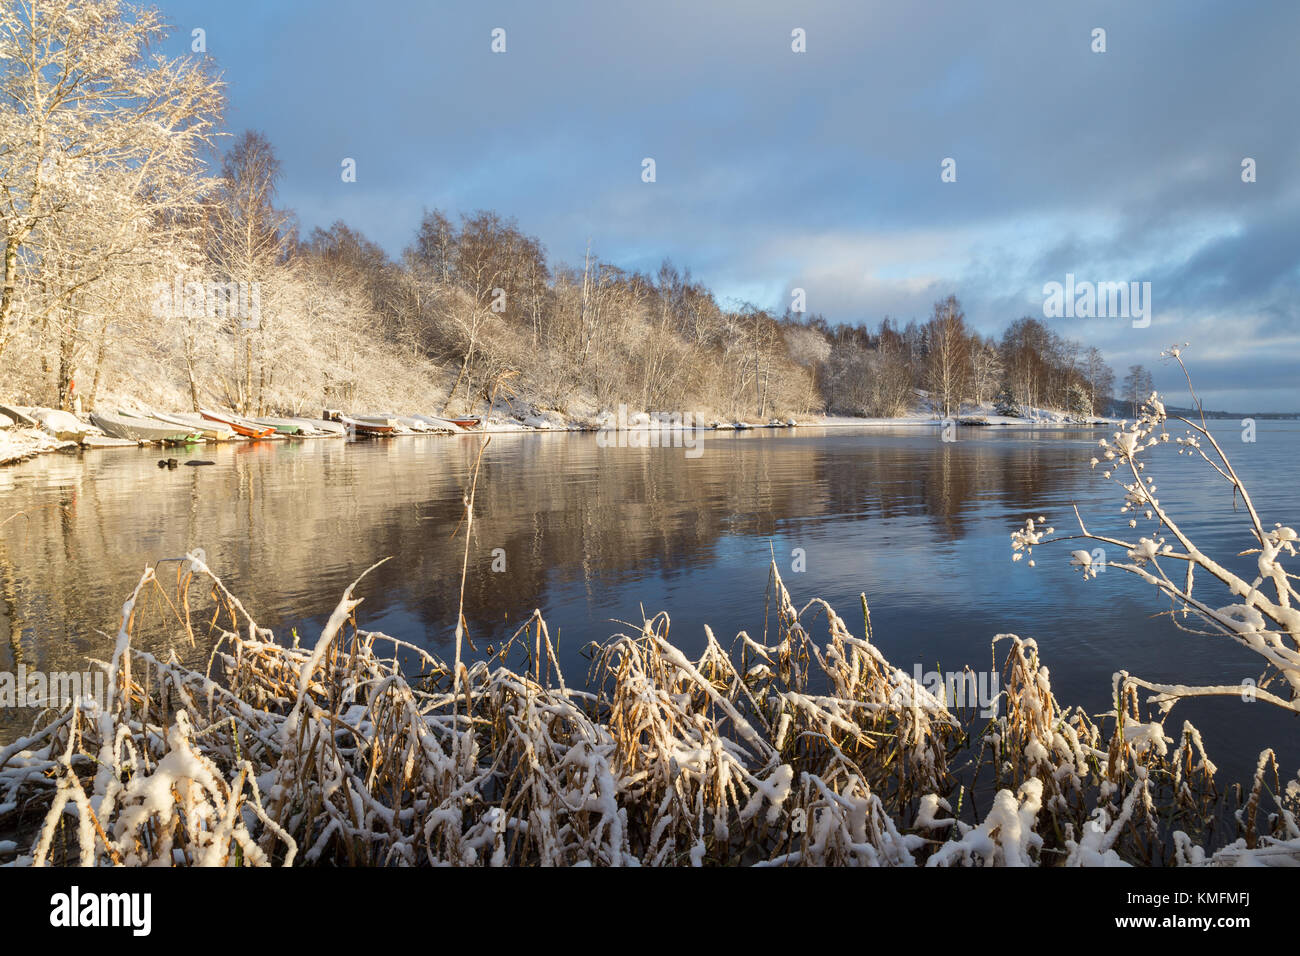 Beautiful view of snowy plants, trees, several rowboats and Lake Pyhäjärvi on a sunny day in the winter - Stock Image